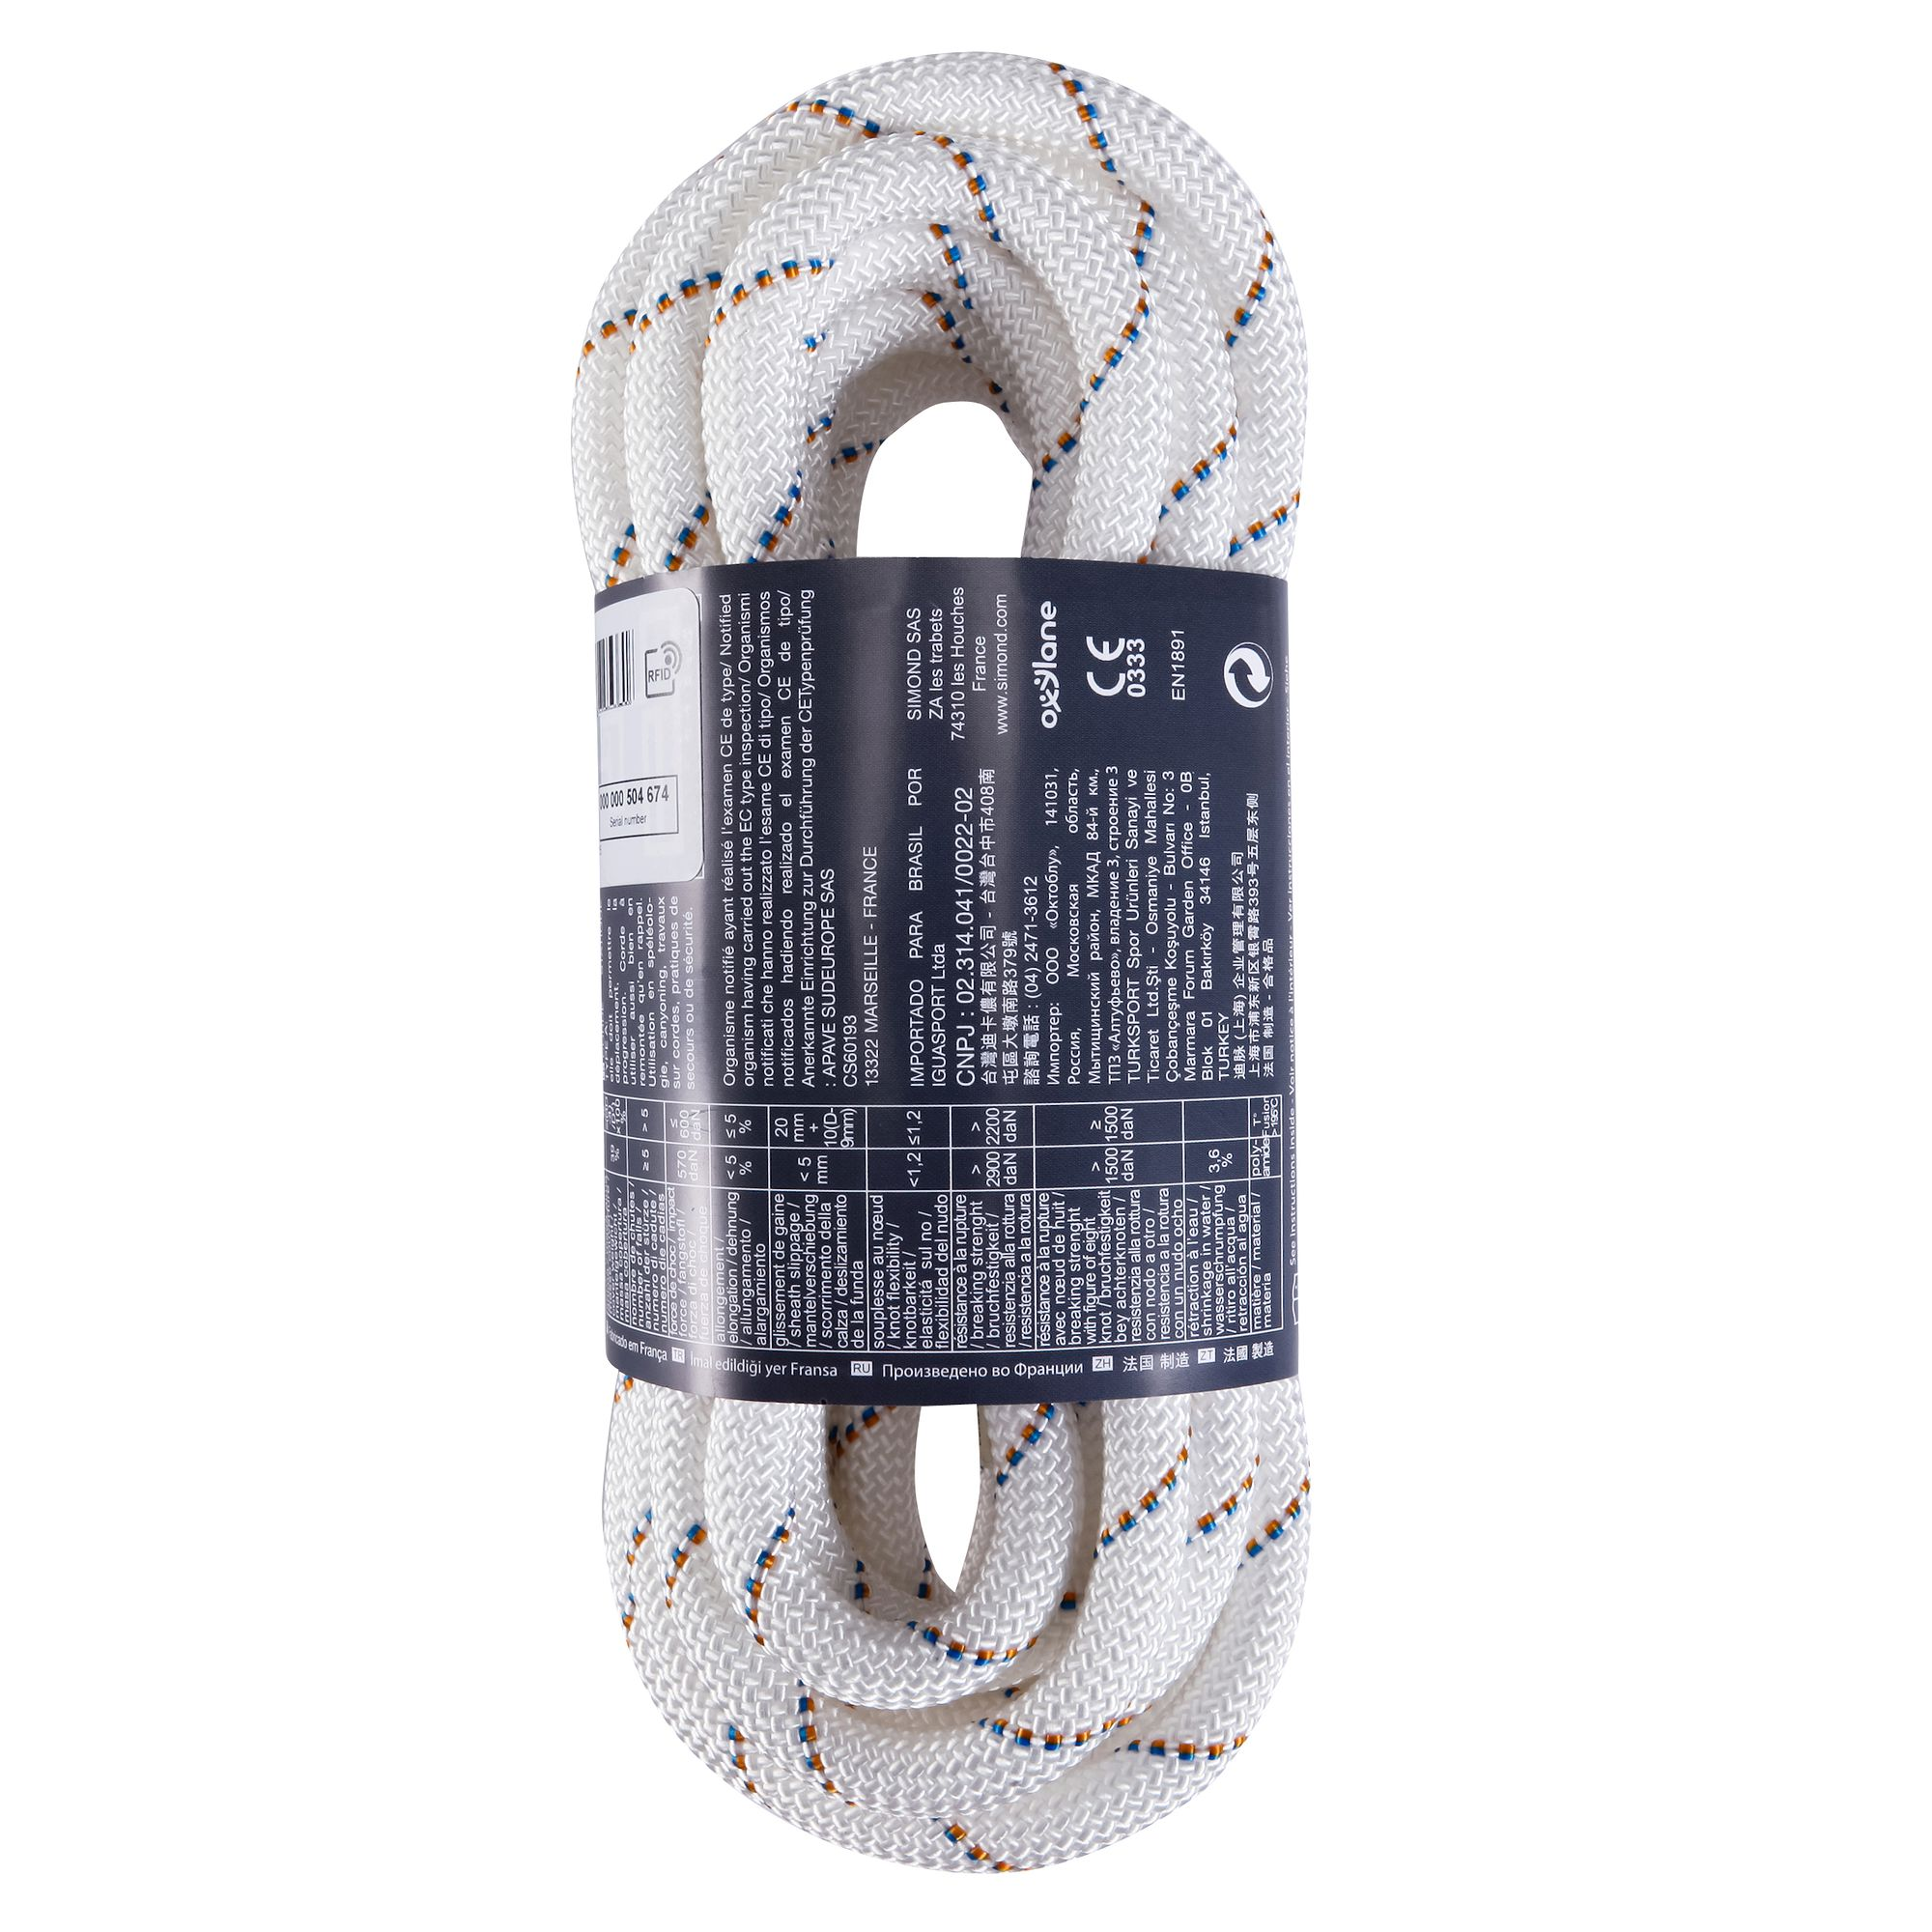 CORDE STAT 10.5mm x 5m